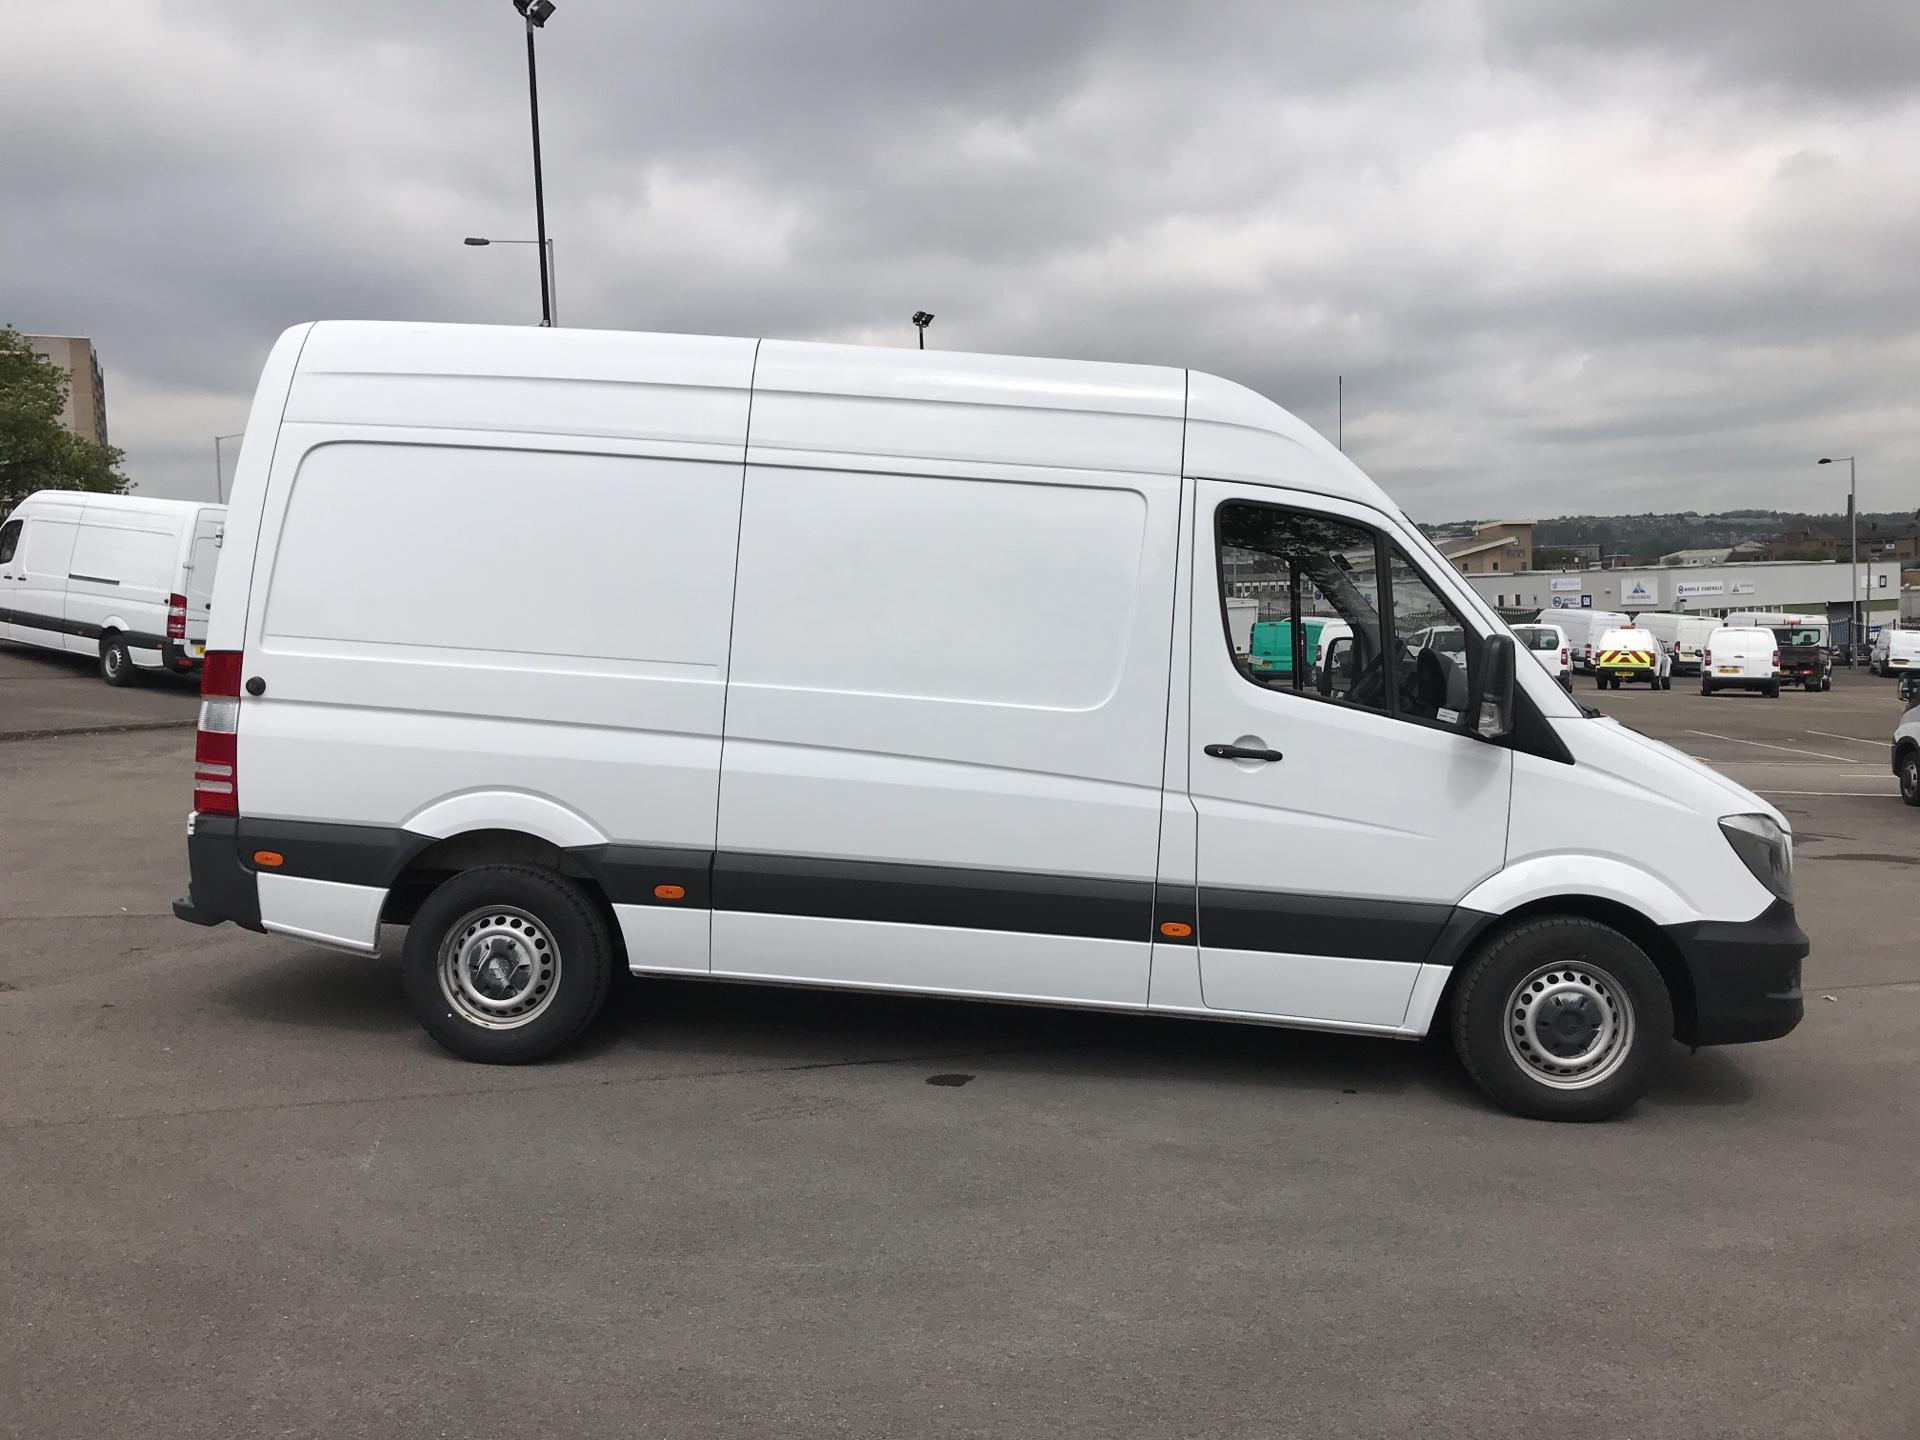 2017 Mercedes-Benz Sprinter 3.5T High Roof Van MWB (KN17BVK) Thumbnail 2